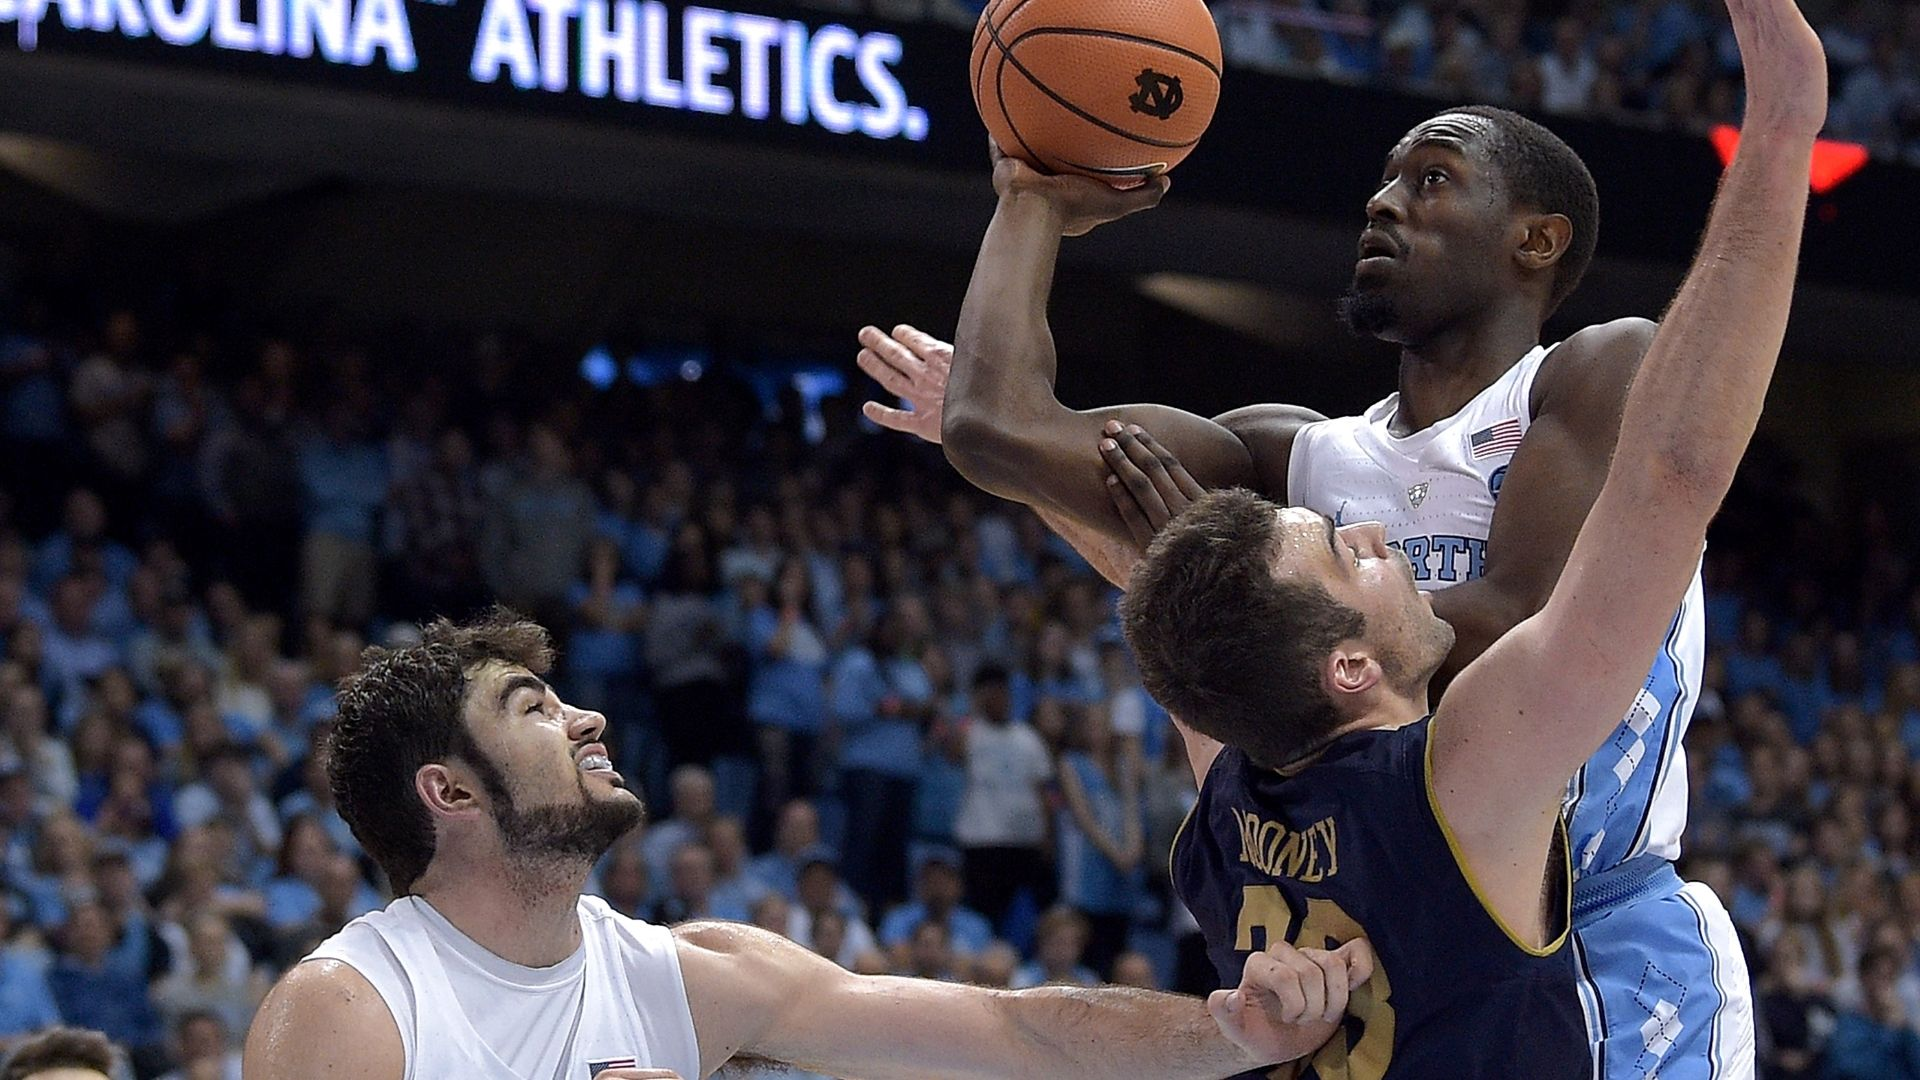 UNC comes away with home victory